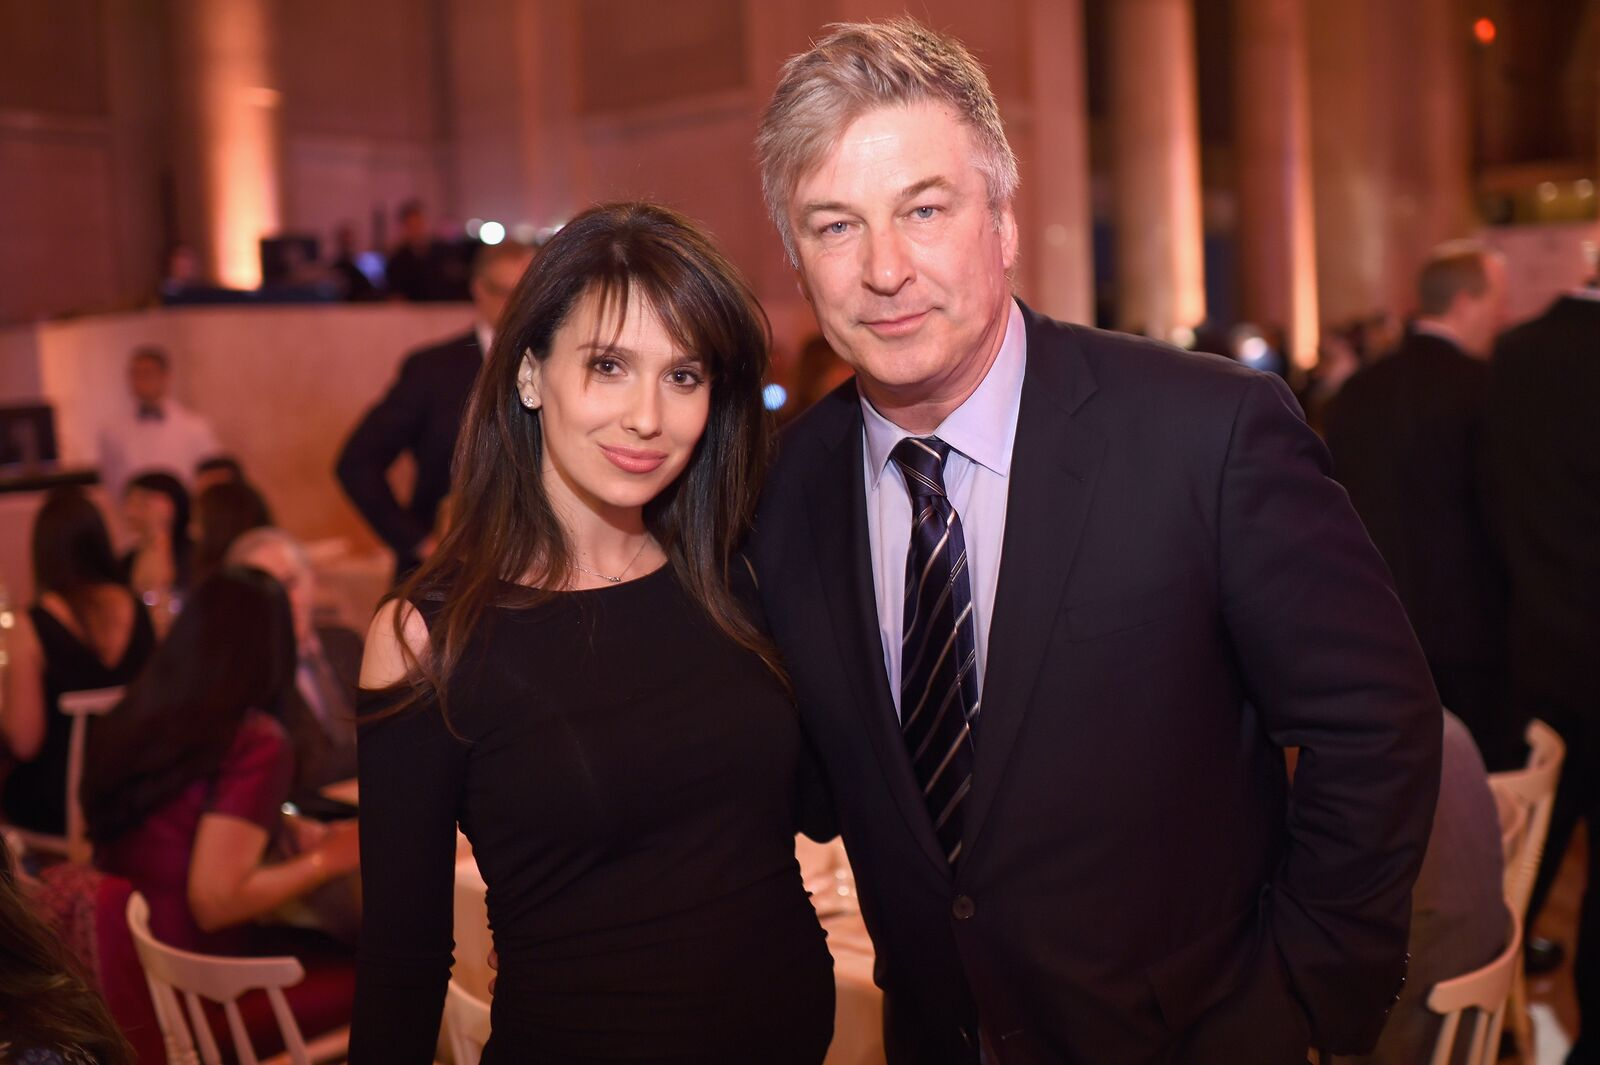 Hilaria Baldwin (L) and actor Alec Baldwin attend Stand Up To Cancer's New York Standing Room Only,on April 9, 2016 | Photo: Getty Images